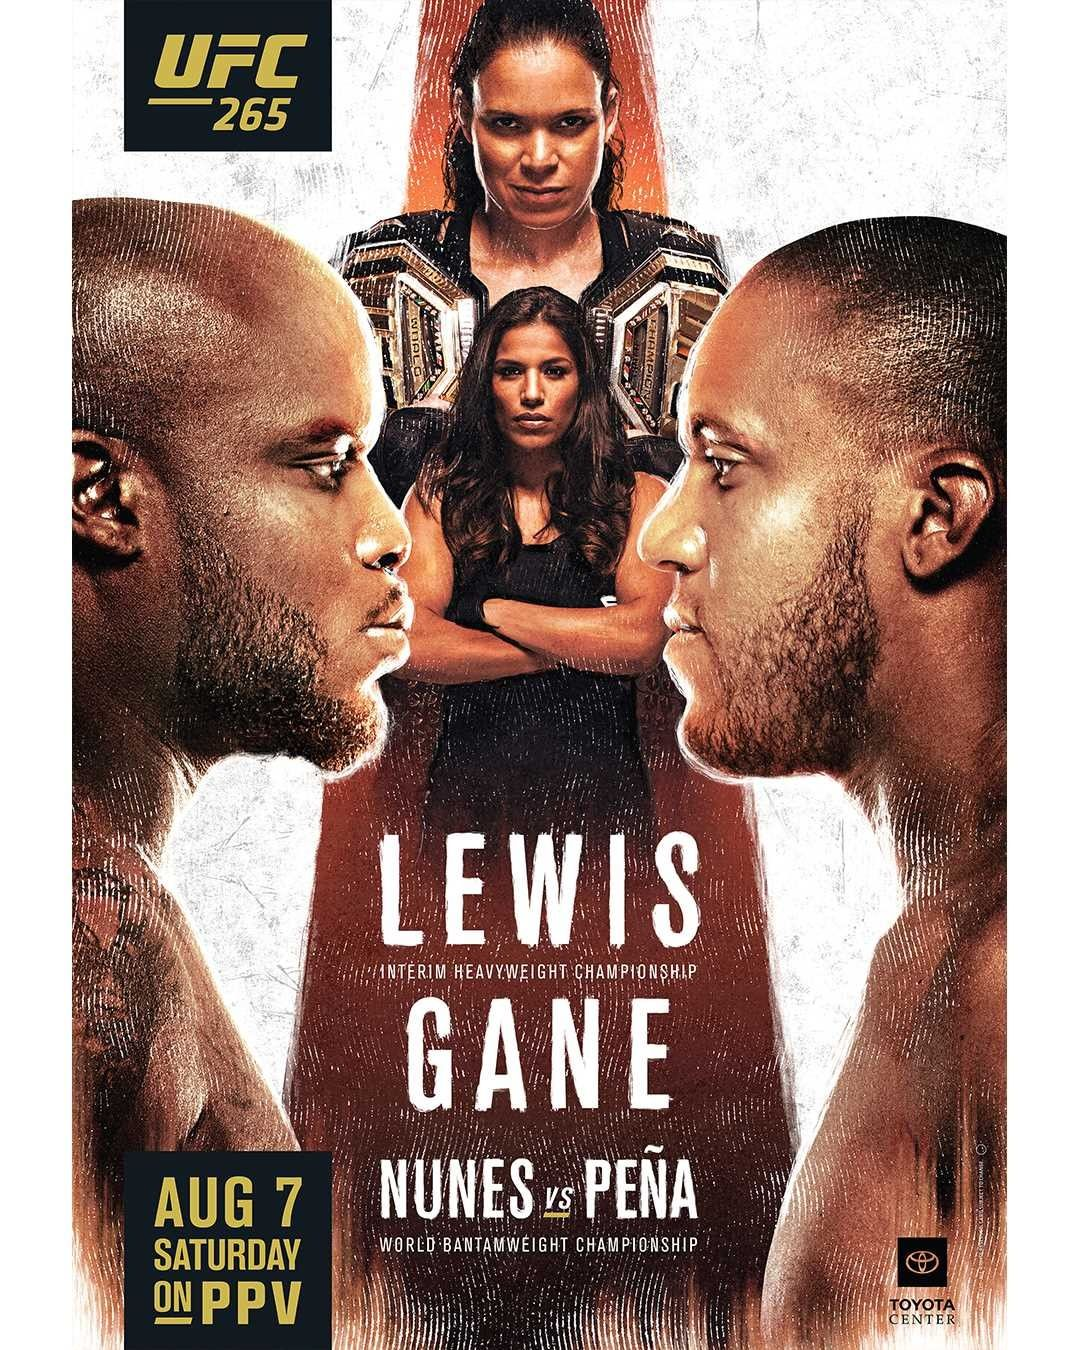 UFC 265 Fight Card Poster